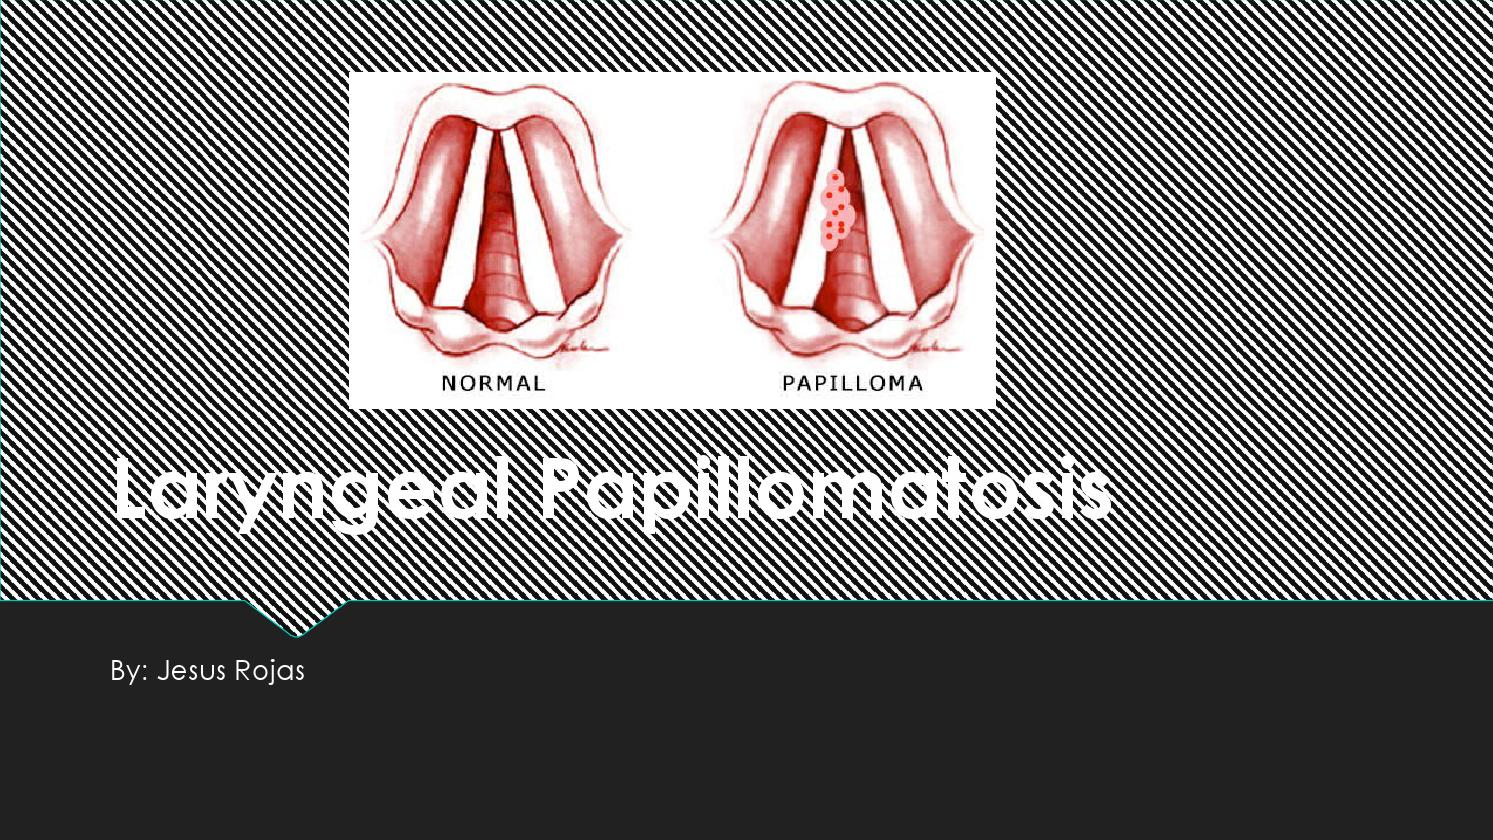 intraductal papilloma of breast symptoms ductal papilloma tumor